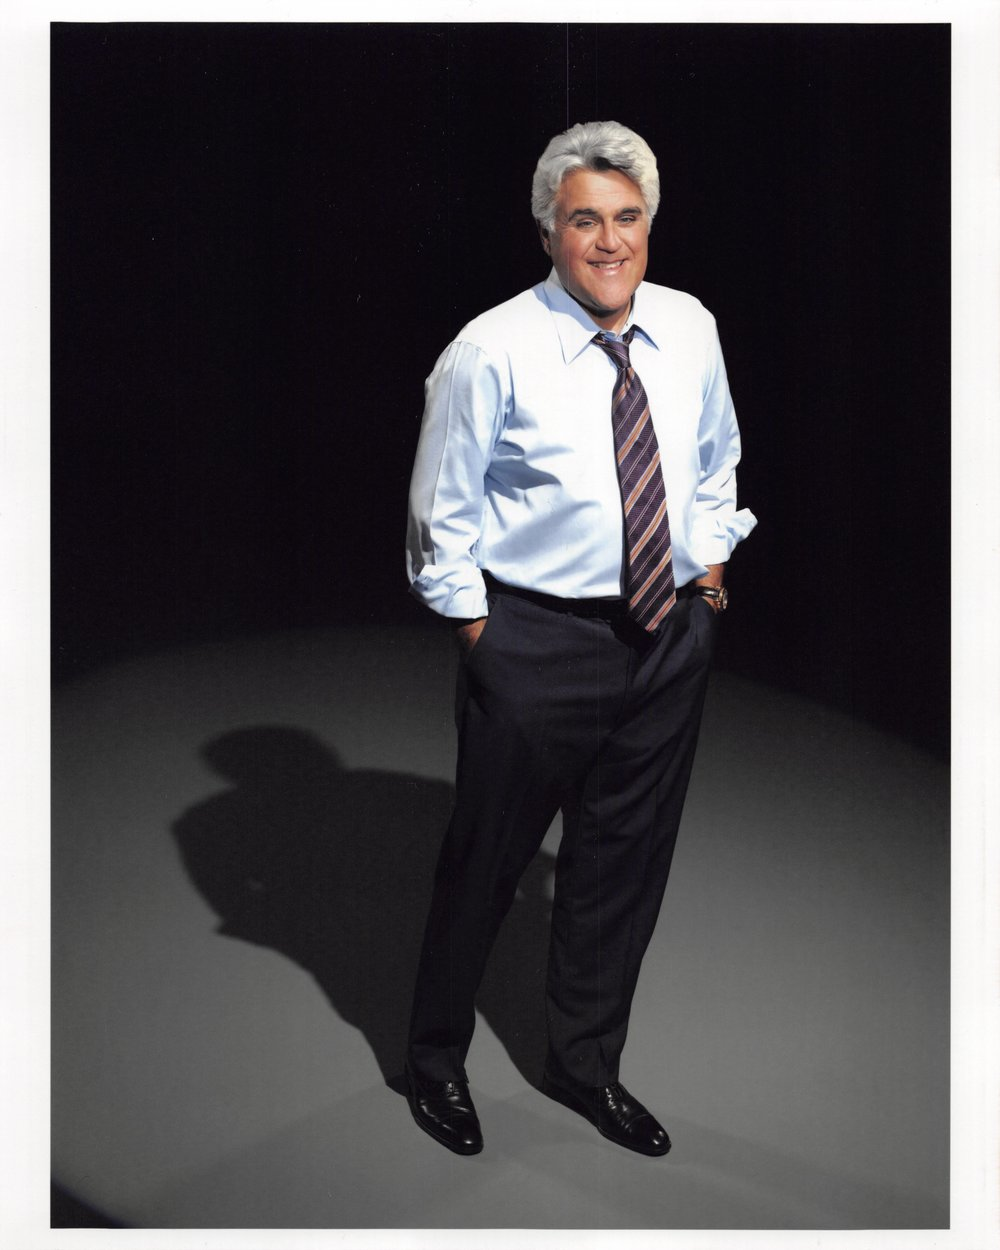 Jay Leno High Resolution Photo 1.jpg